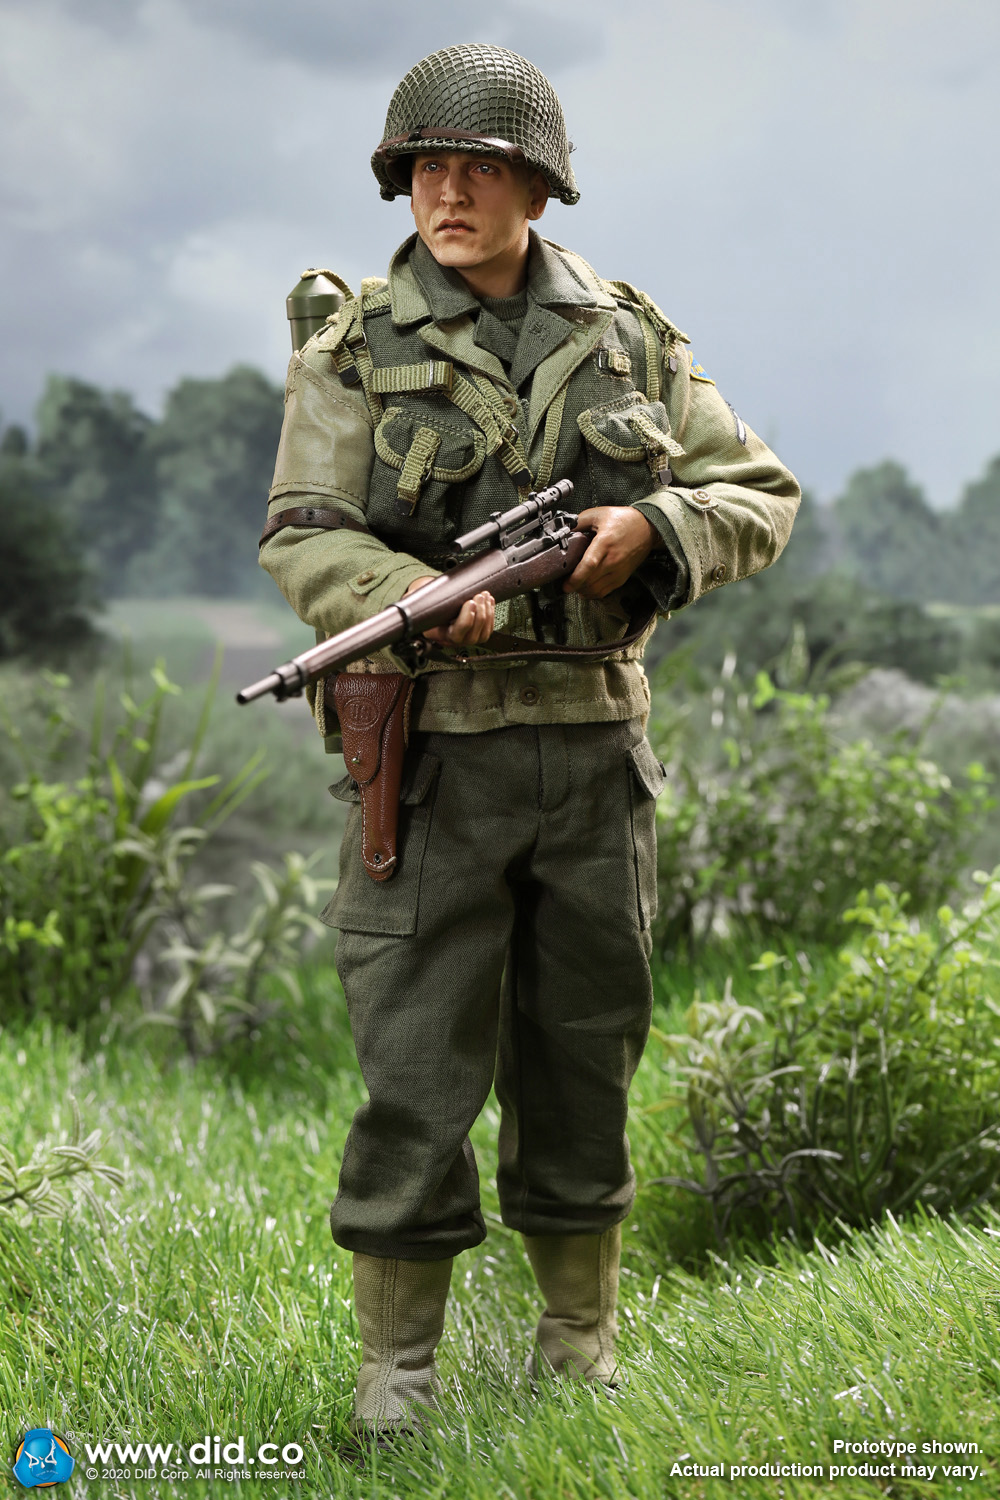 DiD - NEW PRODUCT: DiD: A80144 WWII US 2nd Ranger Battalion Series 4 Private Jackson 3460